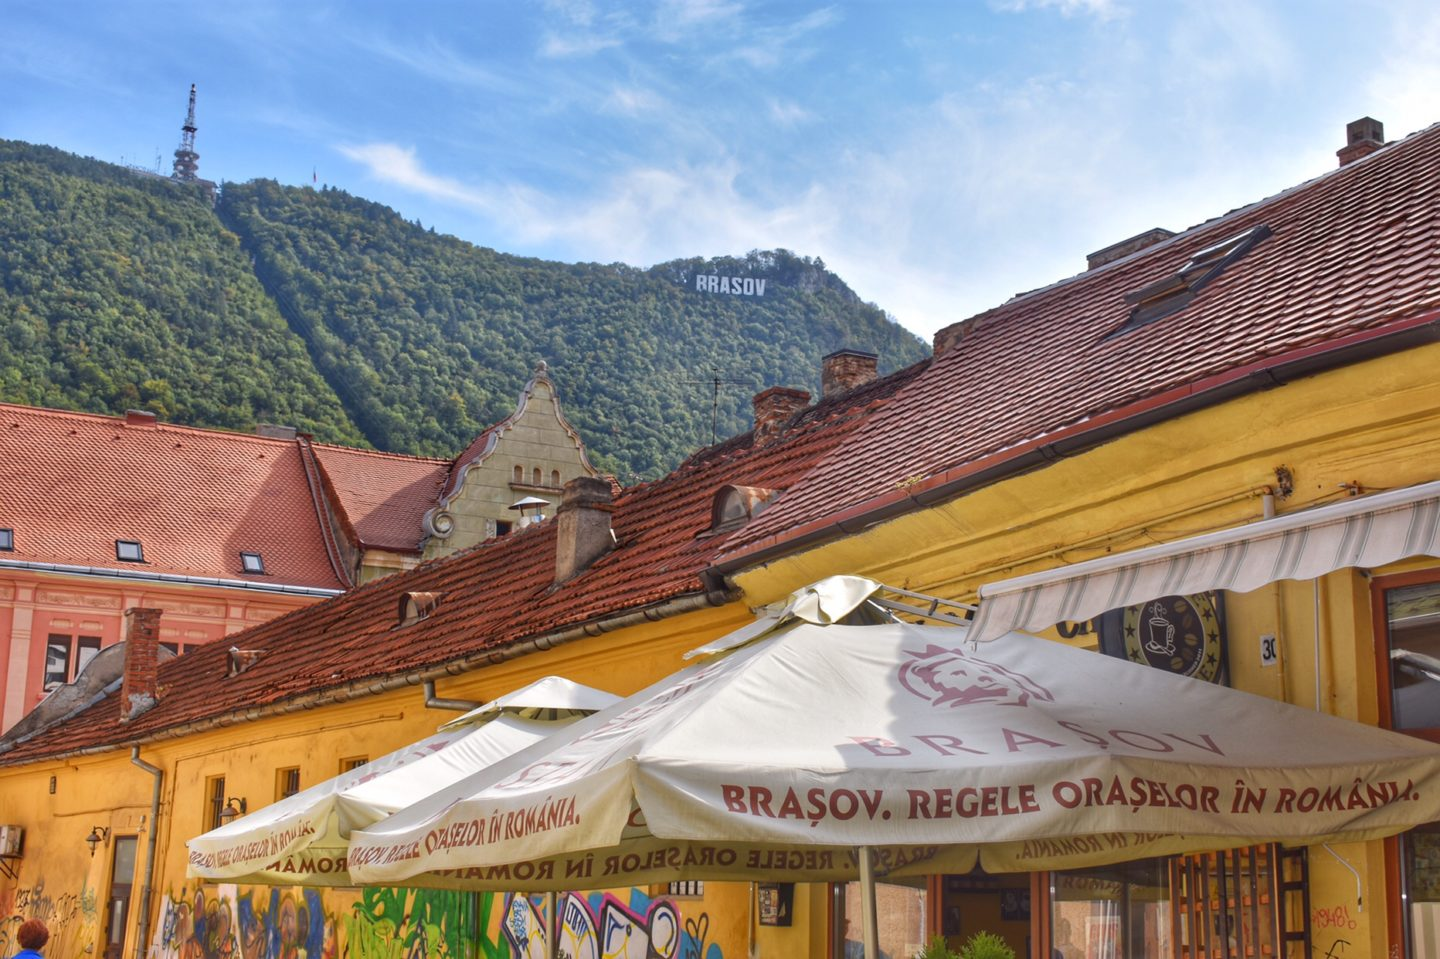 Top Things to do in Brasov Romania, 2 days in Brasov Romania